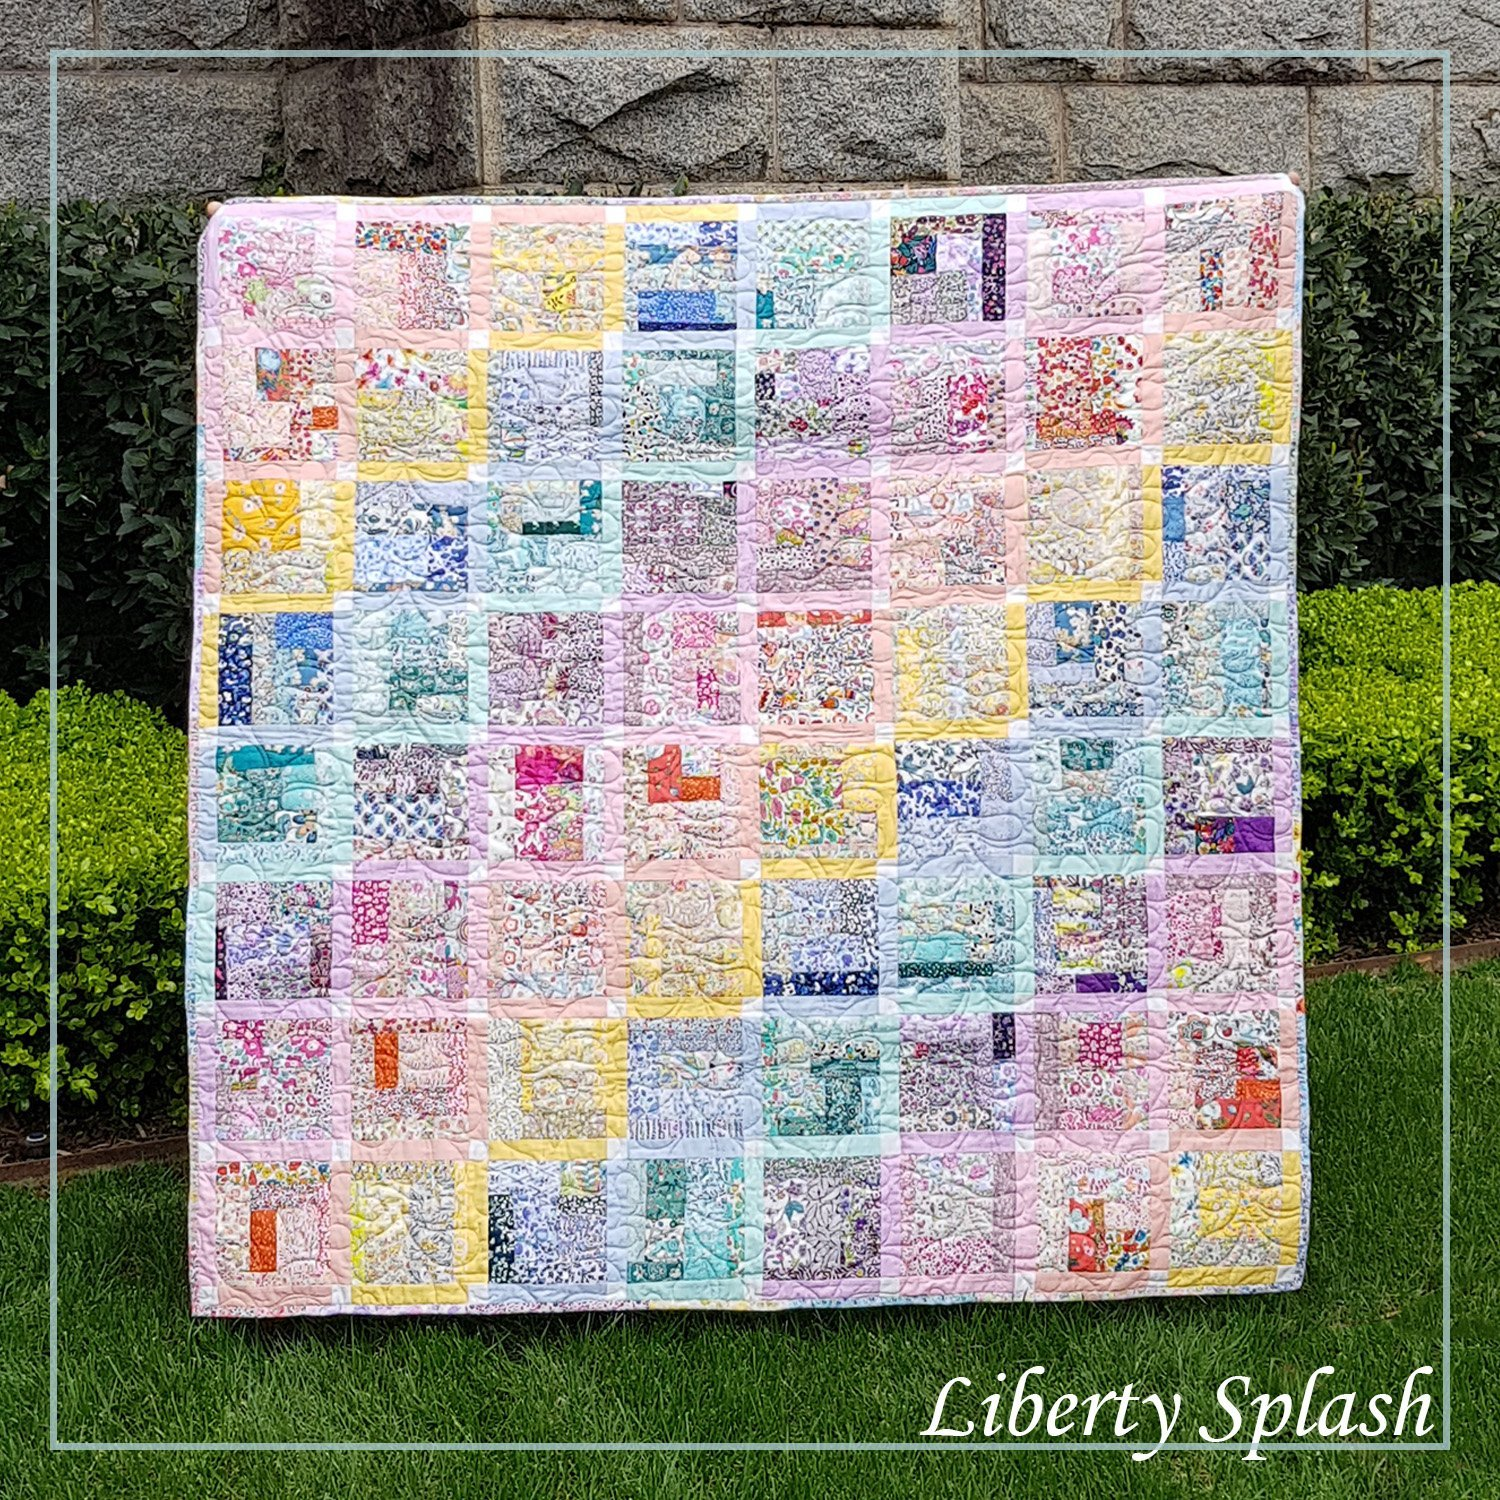 Lilabelle Lane Creations - Liberty Splash Pattern